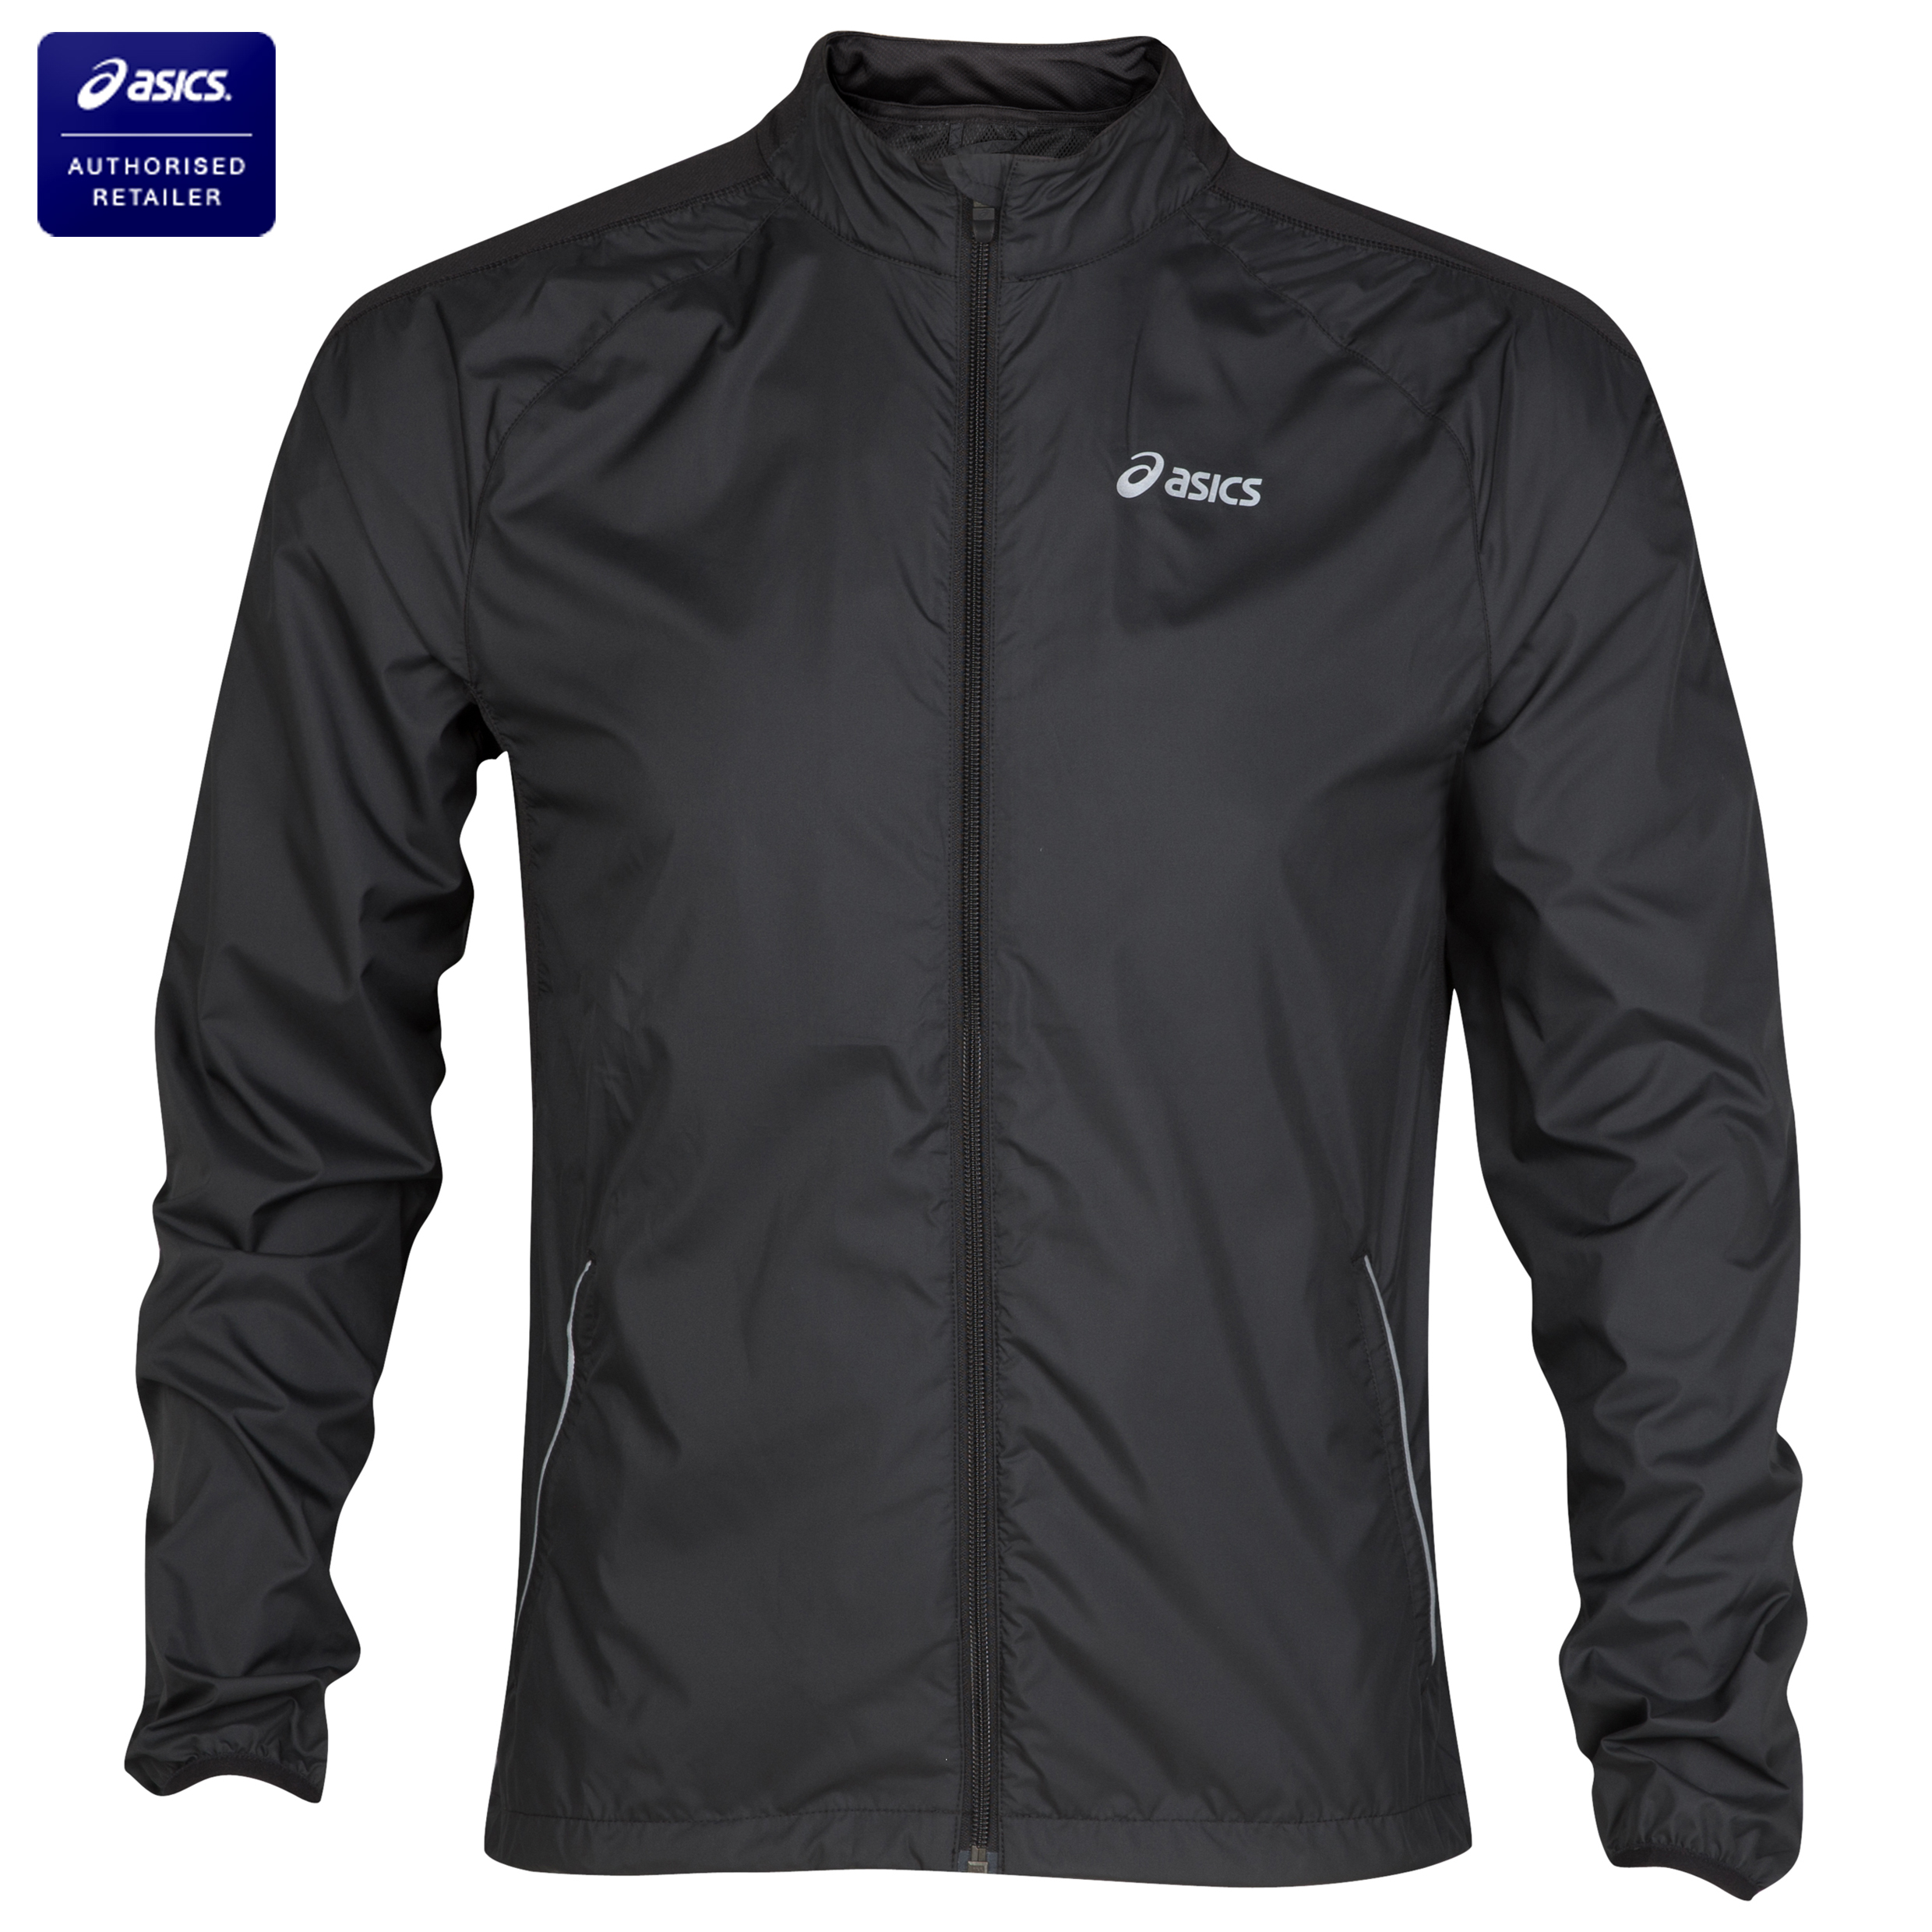 Asics Hermes Jacket - Black